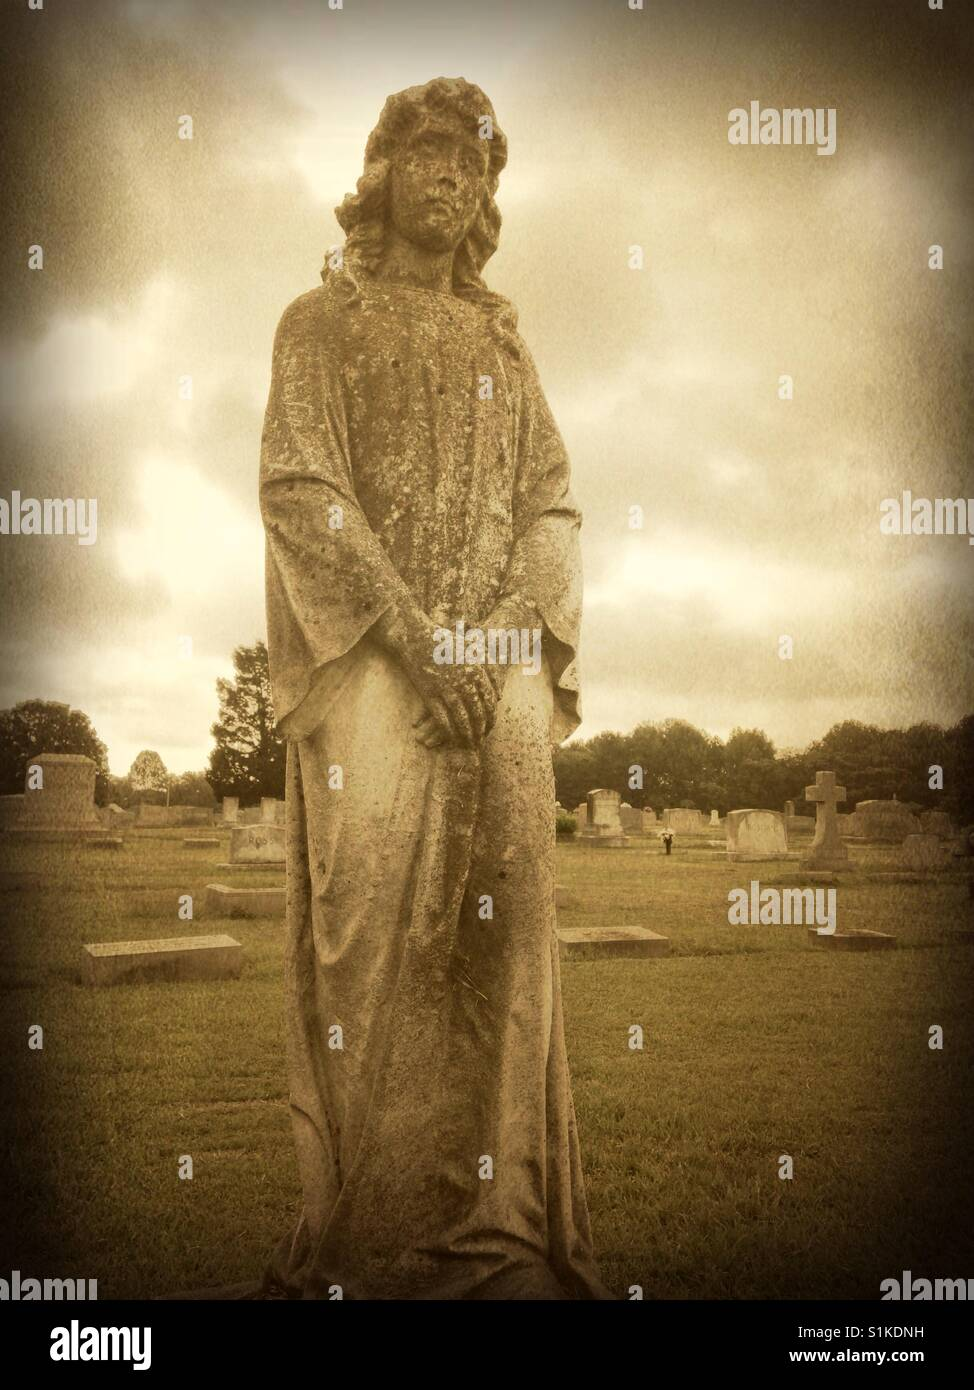 Grieving woman statue in North Carolina cemetery - Stock Image